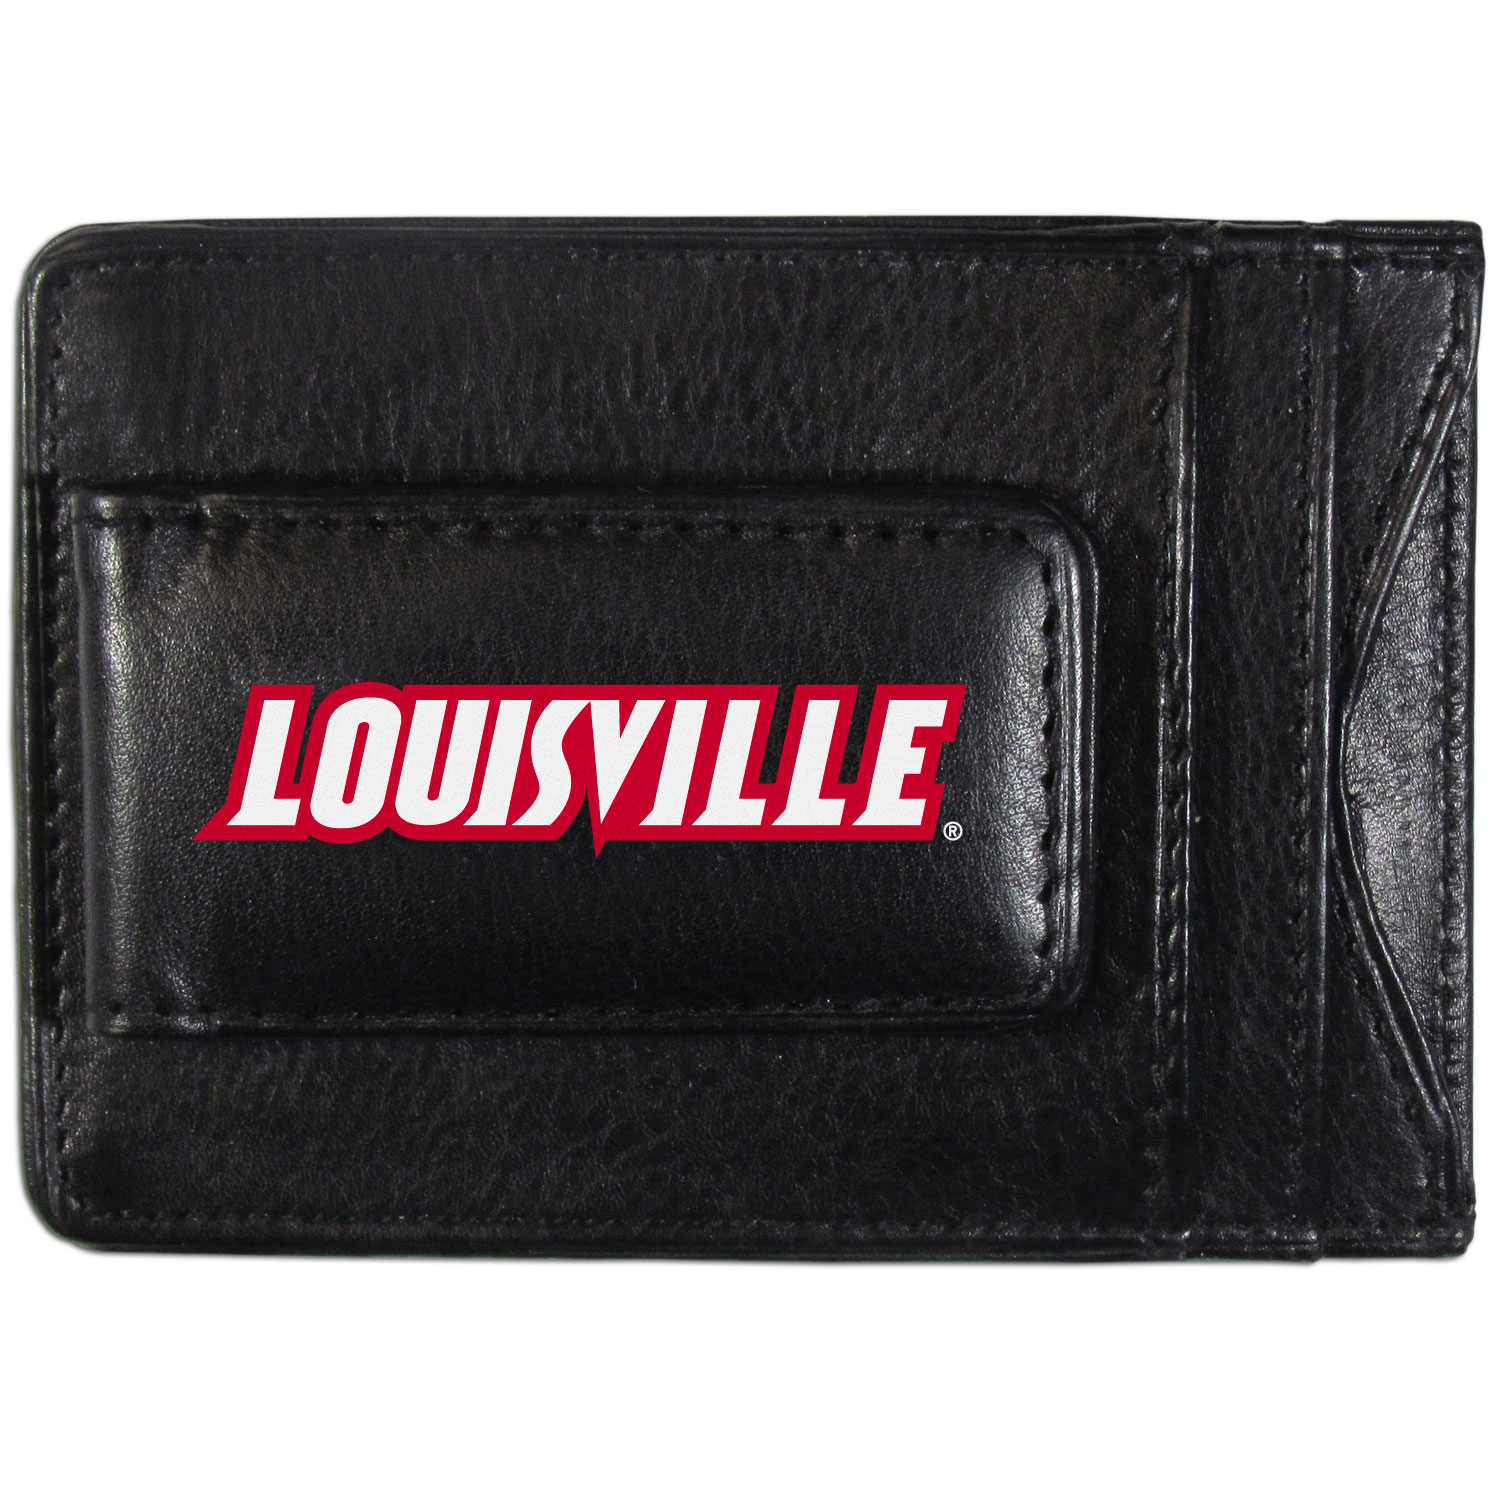 Louisville Cardinals Logo Leather Cash and Cardholder - This super slim leather wallet lets you have all the benefits of a money clip while keeping the organization of a wallet. On one side of this front pocket wallet there is a strong, magnetic money clip to keep your cash easily accessible and the?Louisville Cardinals team logo on the front. The versatile men's accessory is a perfect addition to your fan apparel.